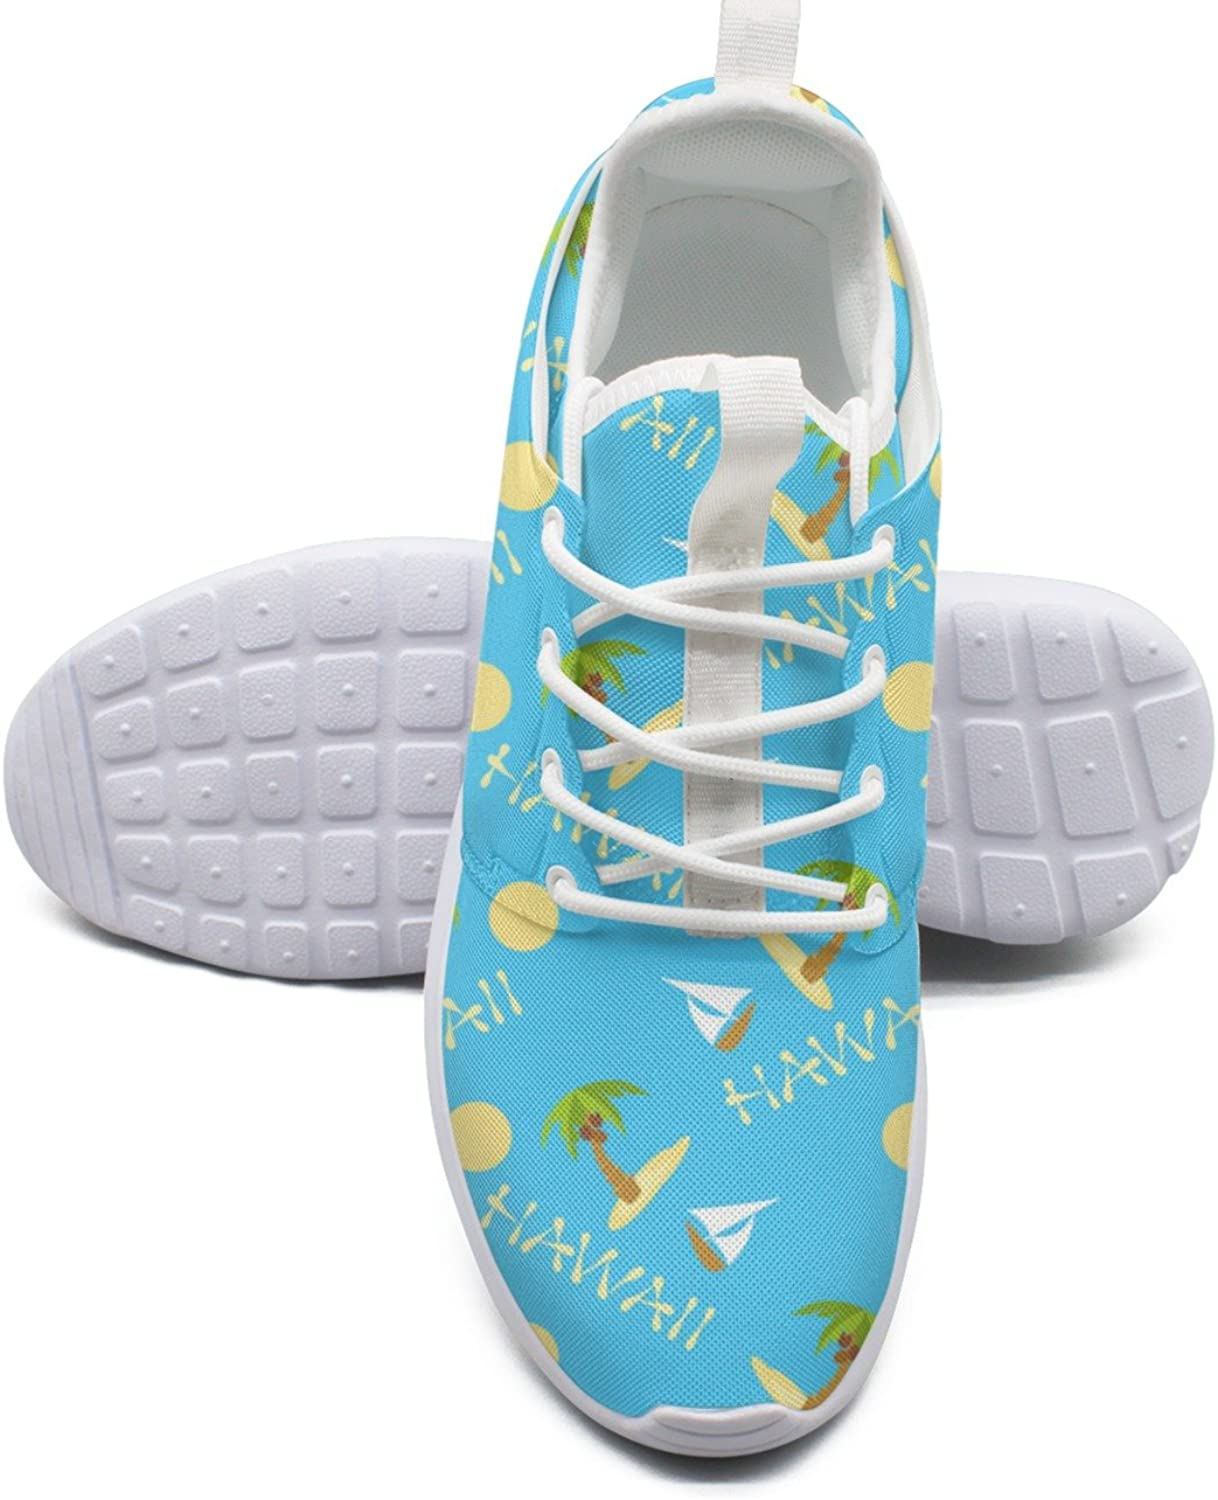 Tropical Island With Palm Tree And Boat Running shoes For Plantar Fasciitis For Women size 6